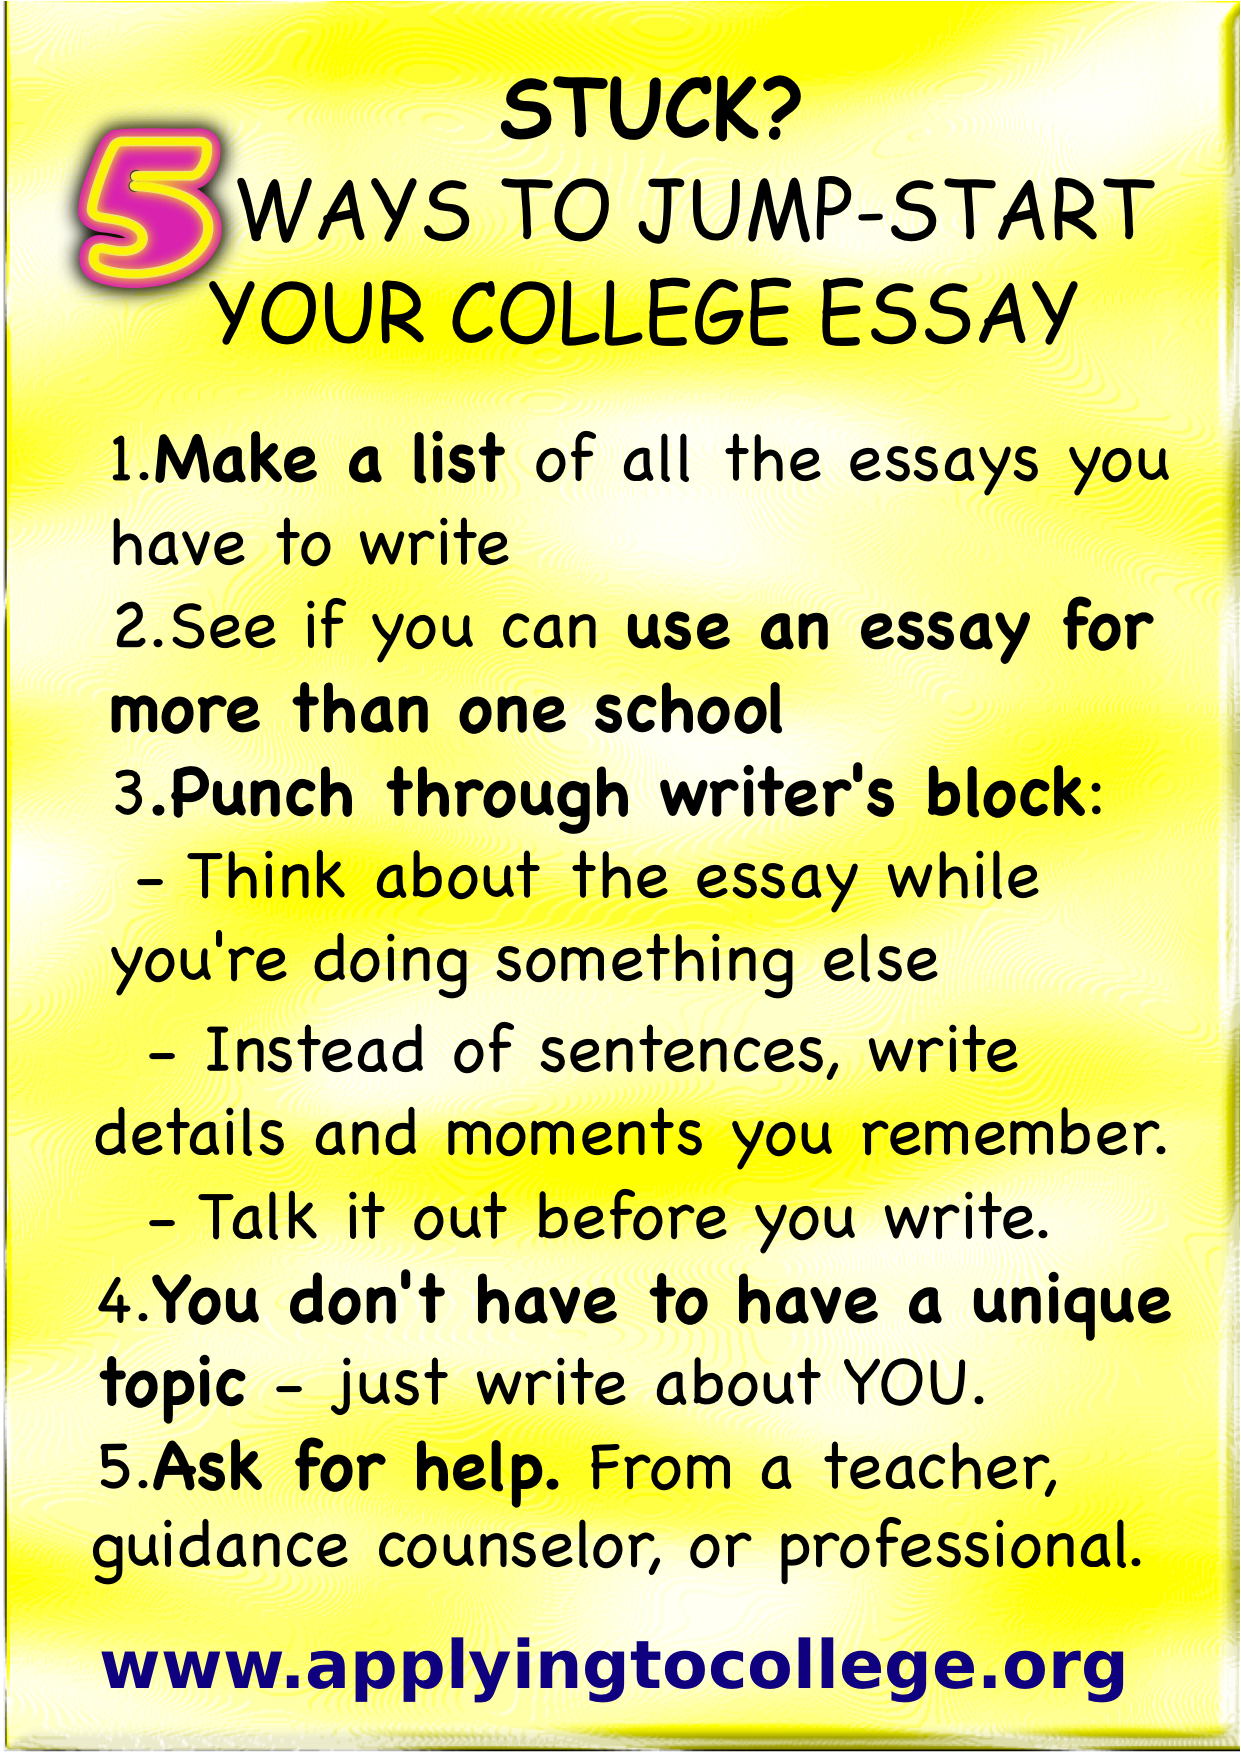 write essay entry college Not only is the college essay a place to showcase writing skills, it's one of the only parts of a college application where a student's voice can shine through the essays are important in part.